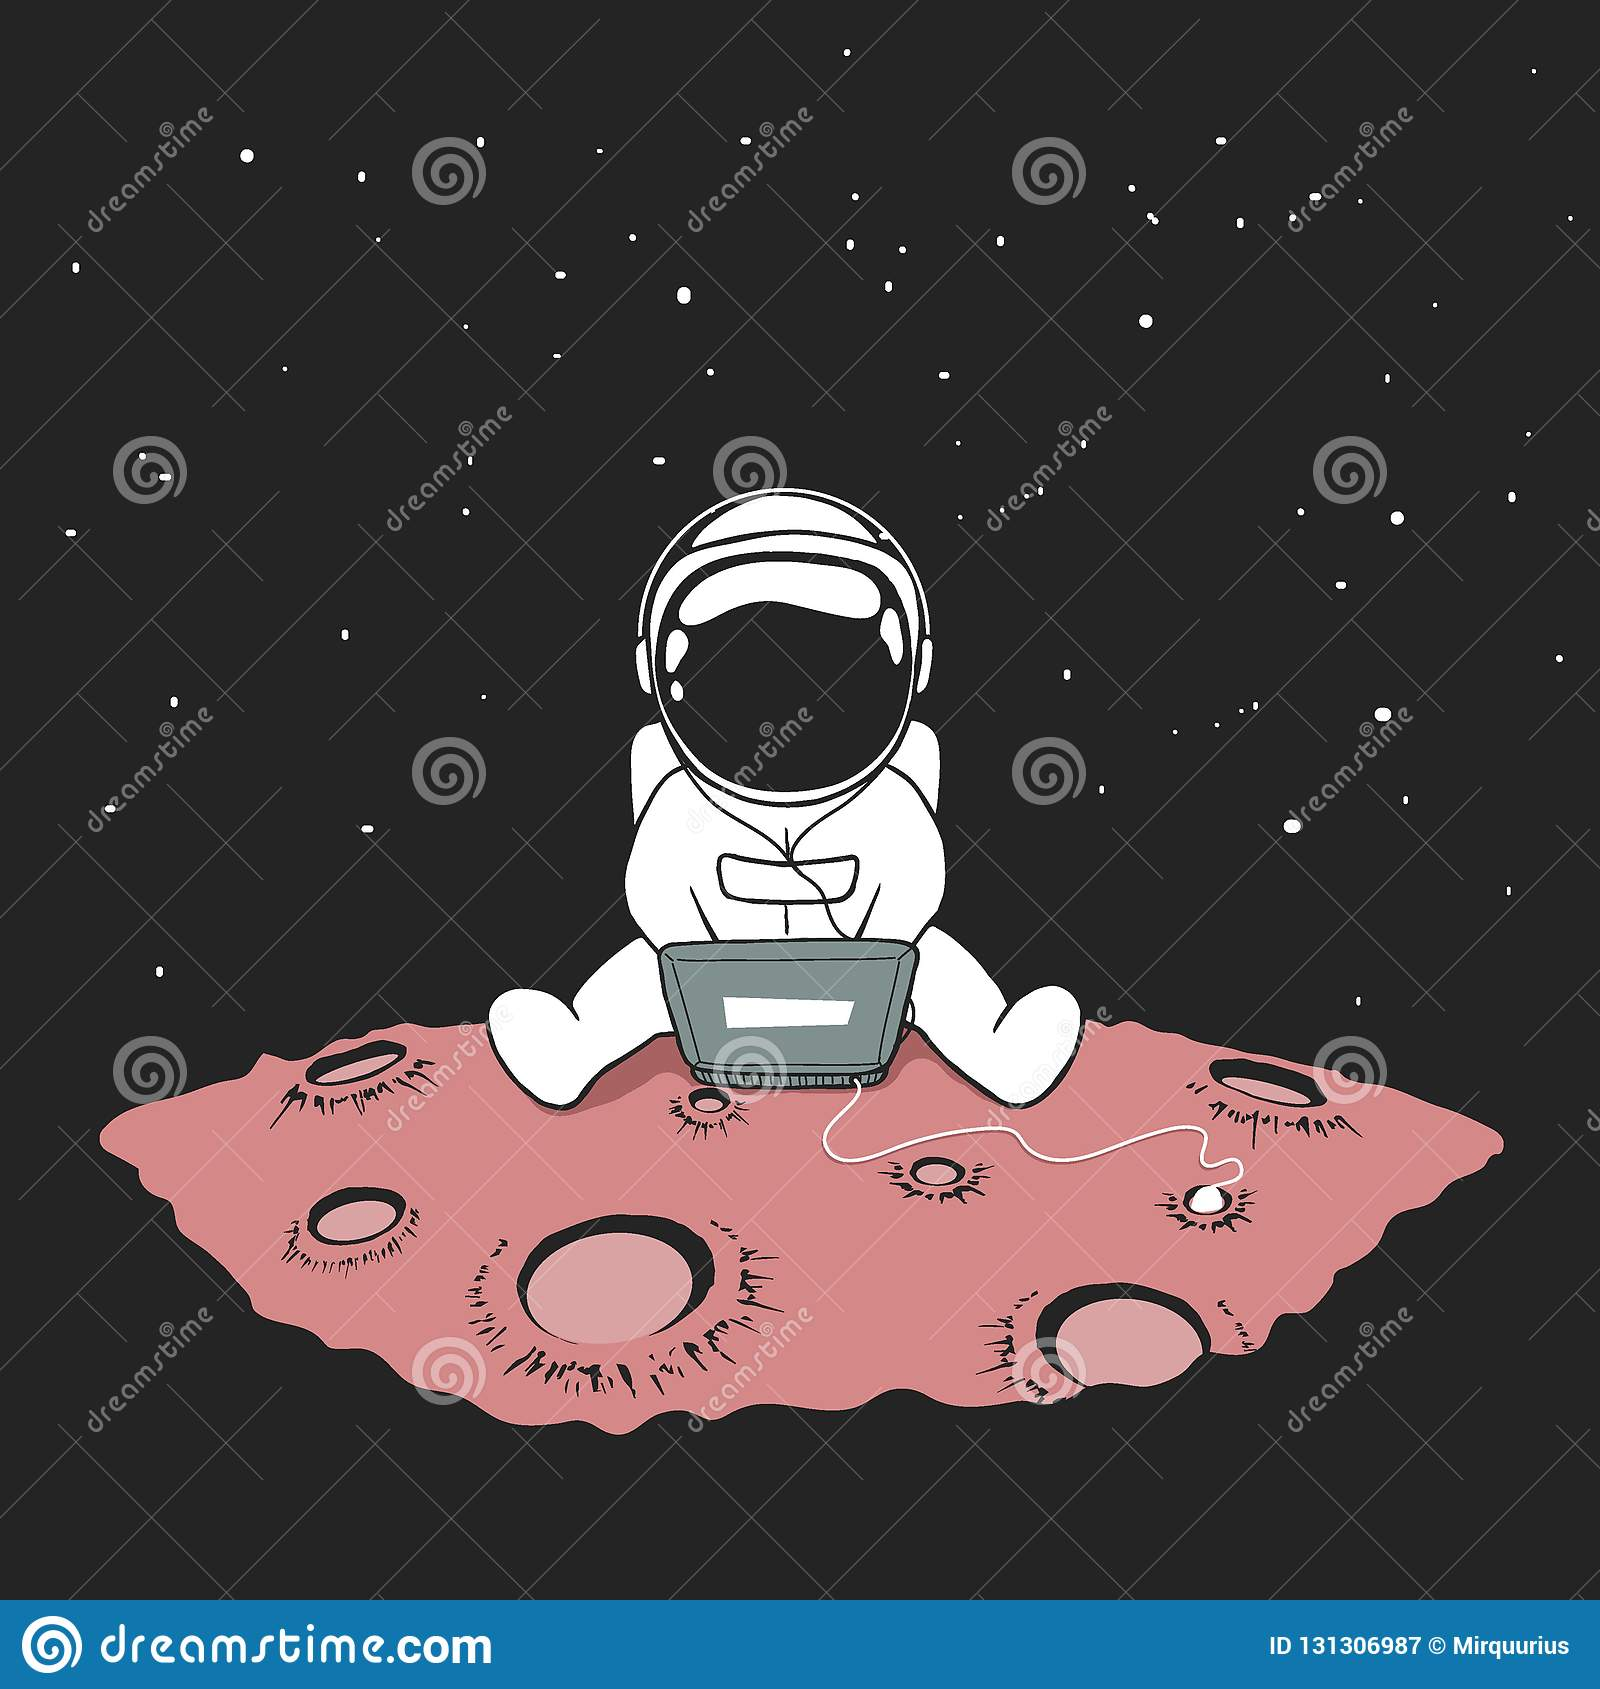 Cute an astronaut sits in internet